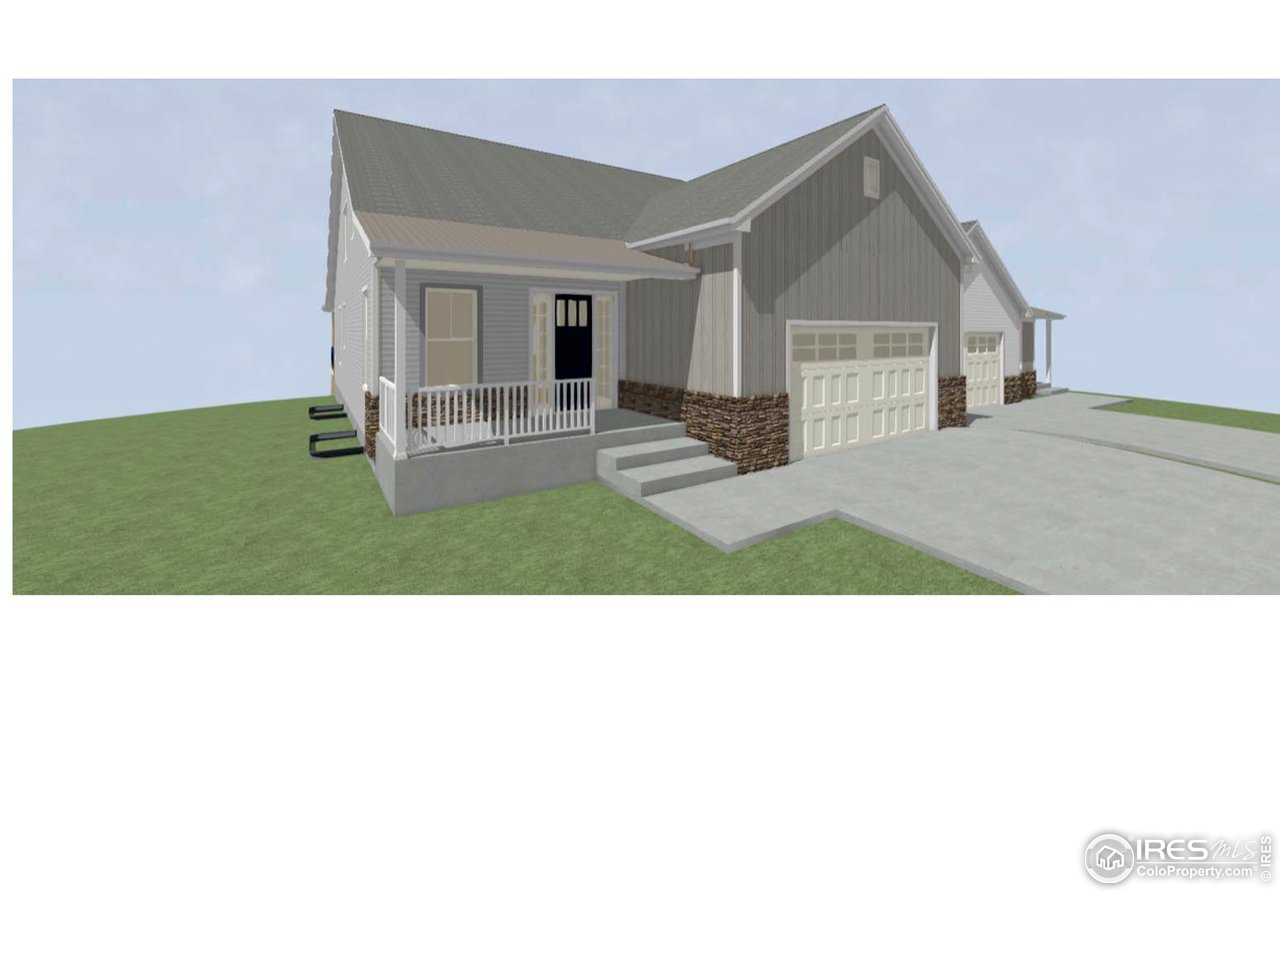 An example elevation of homes to be built